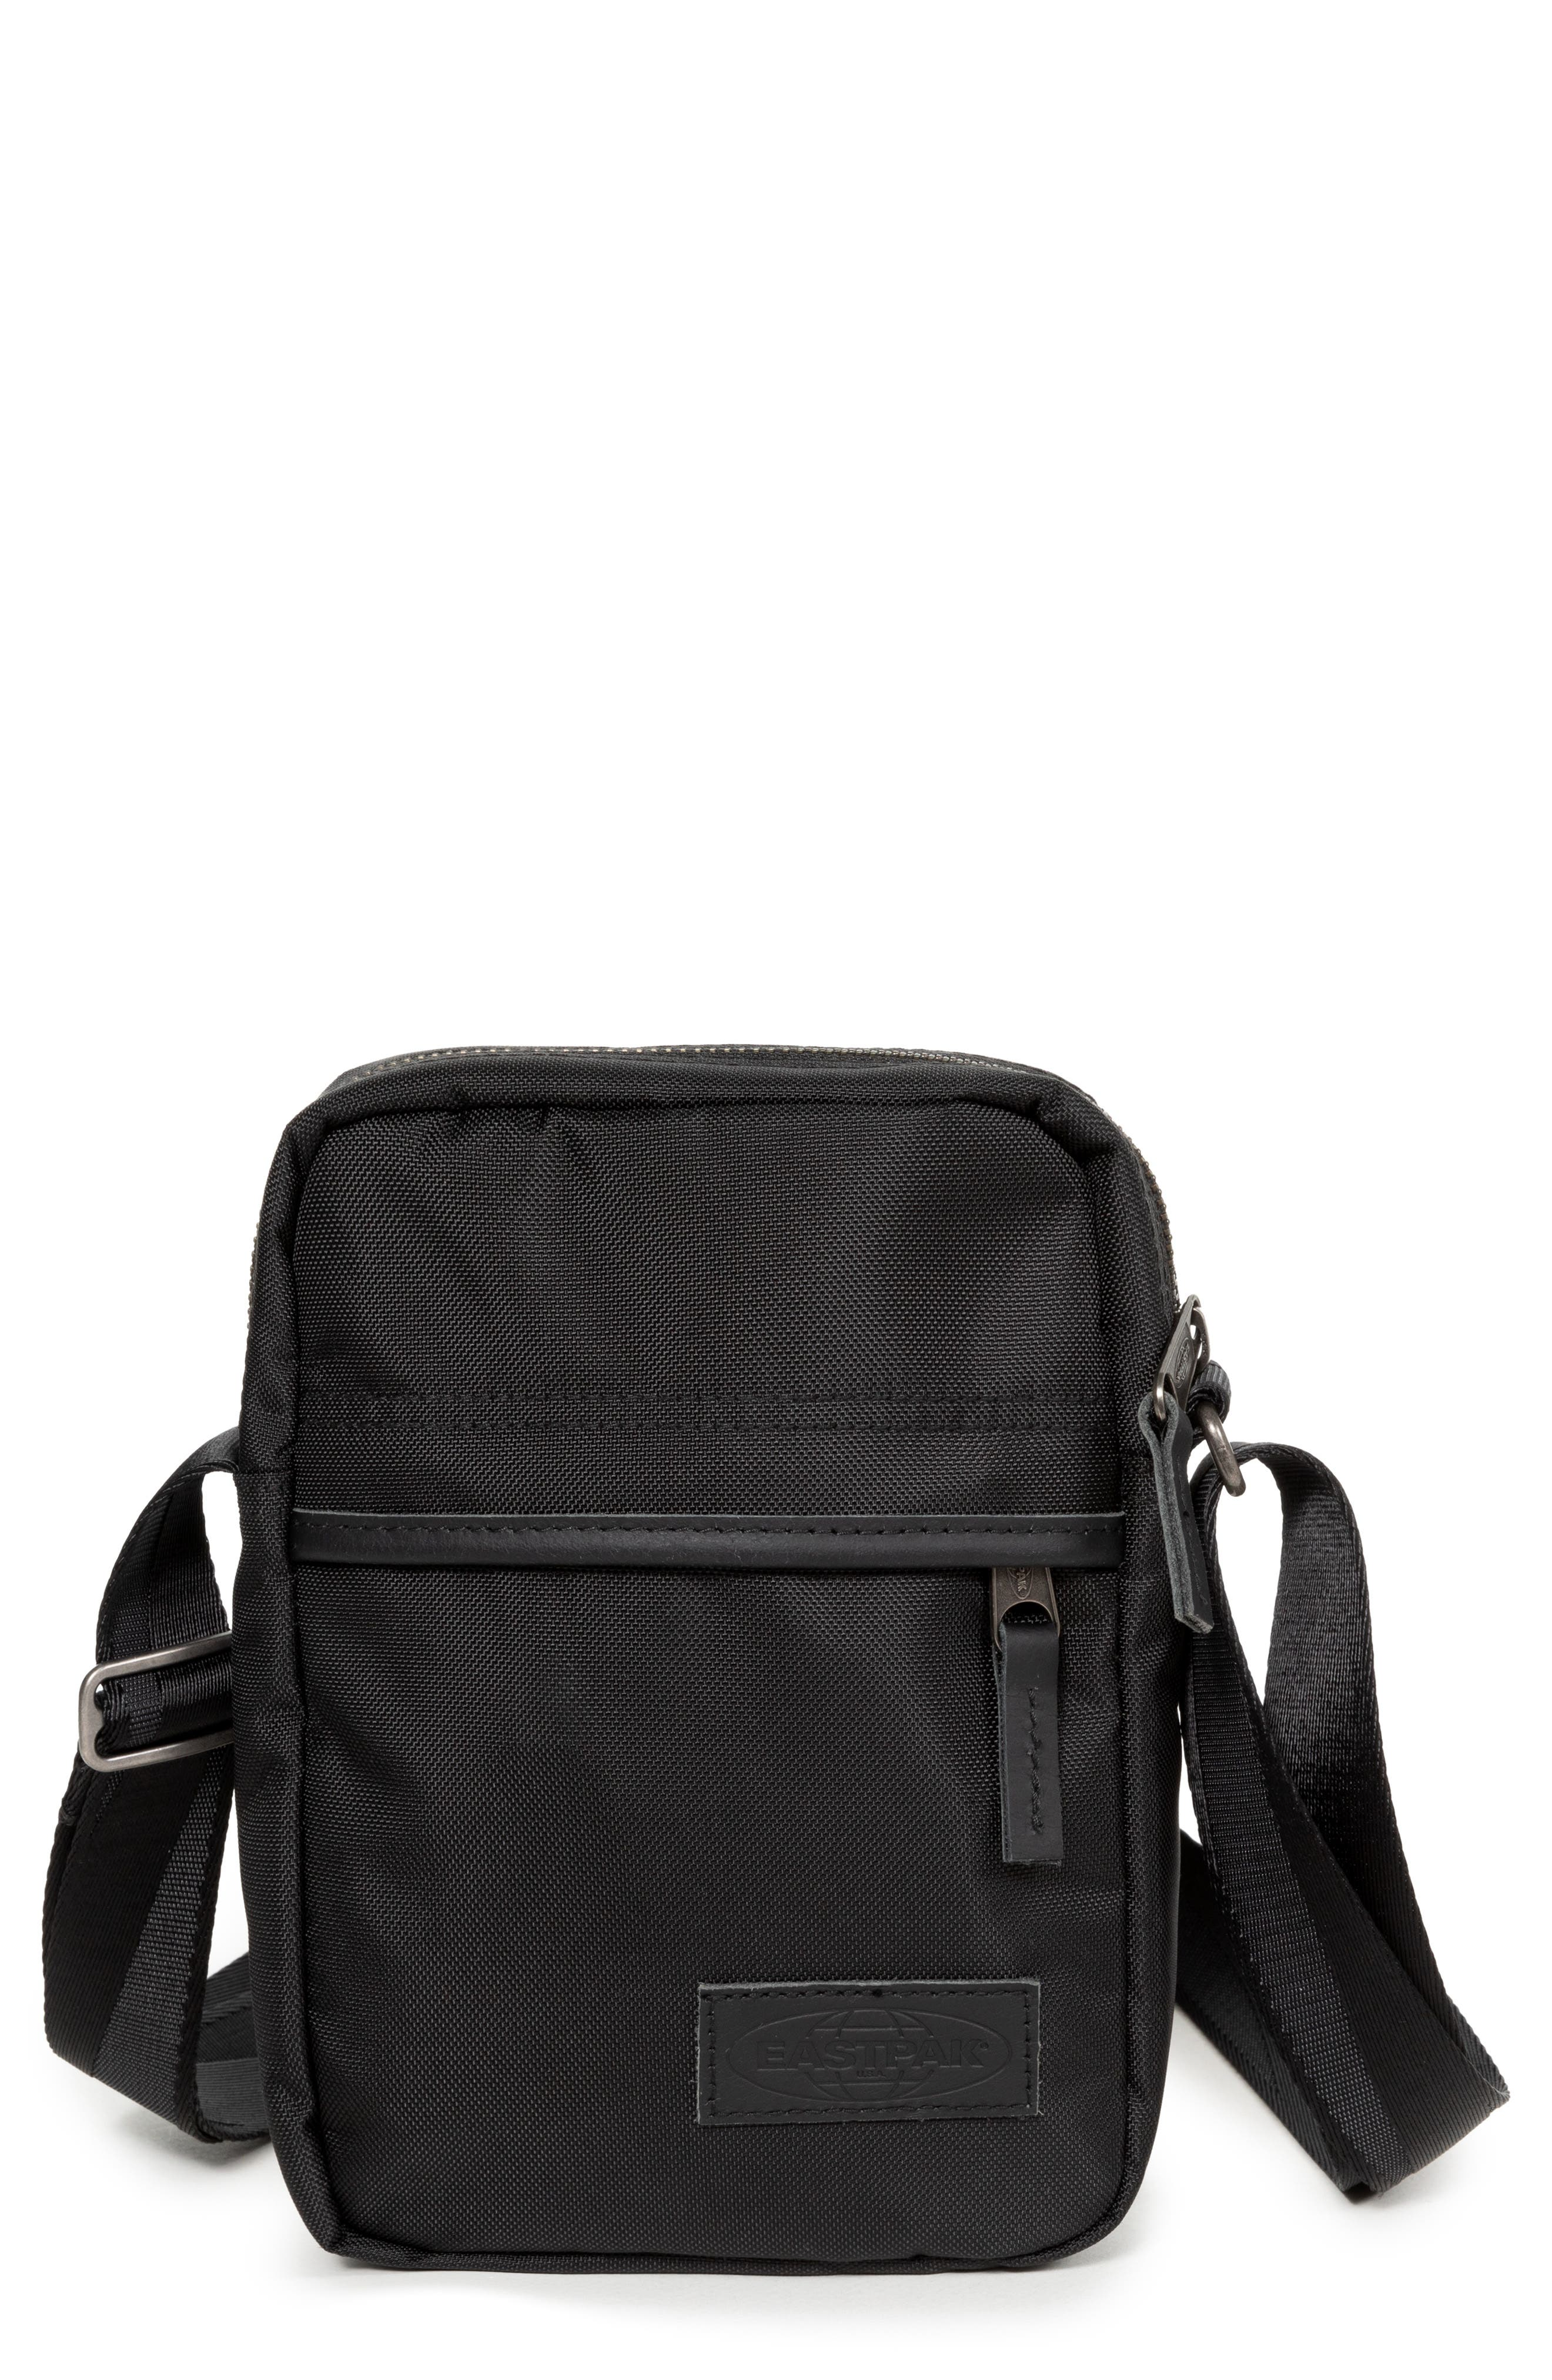 EASTPAK The One Constructed Nylon Crossbody Bag, Main, color, 001